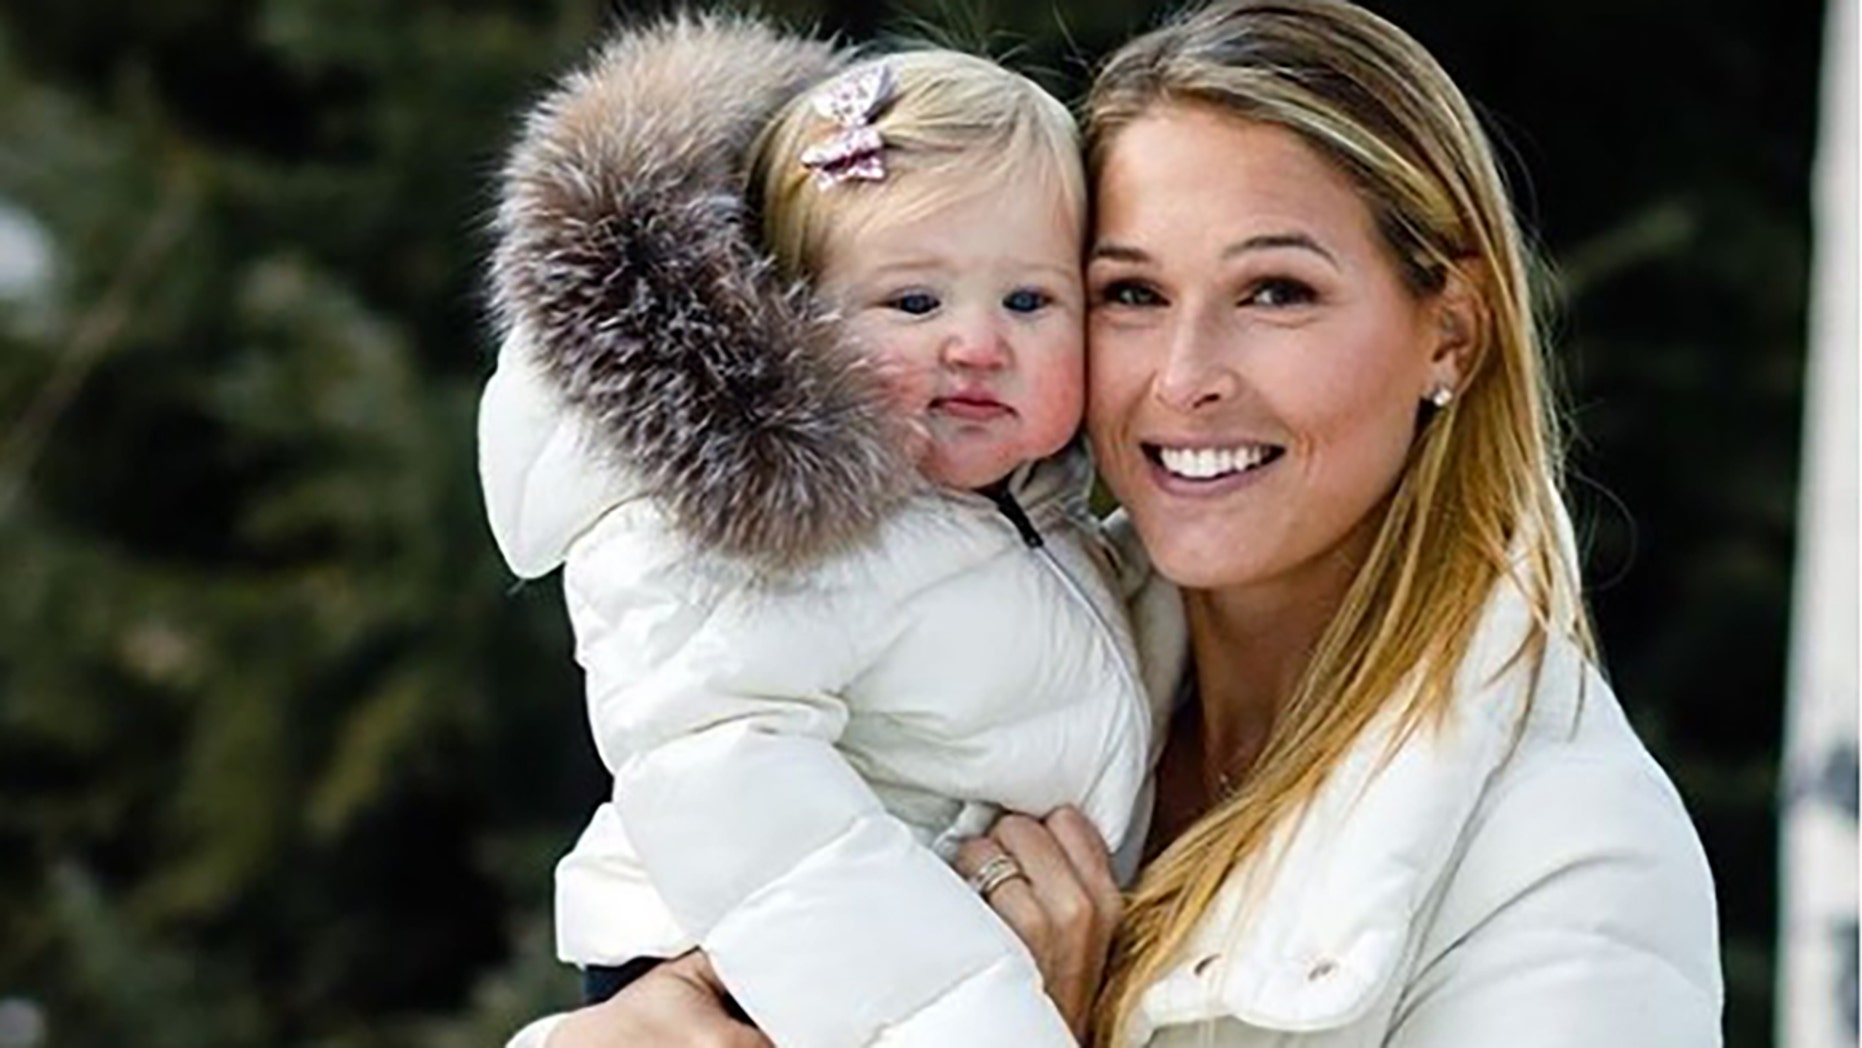 Morgan Miller spoke out Tuesday about the death of her daughter last month.